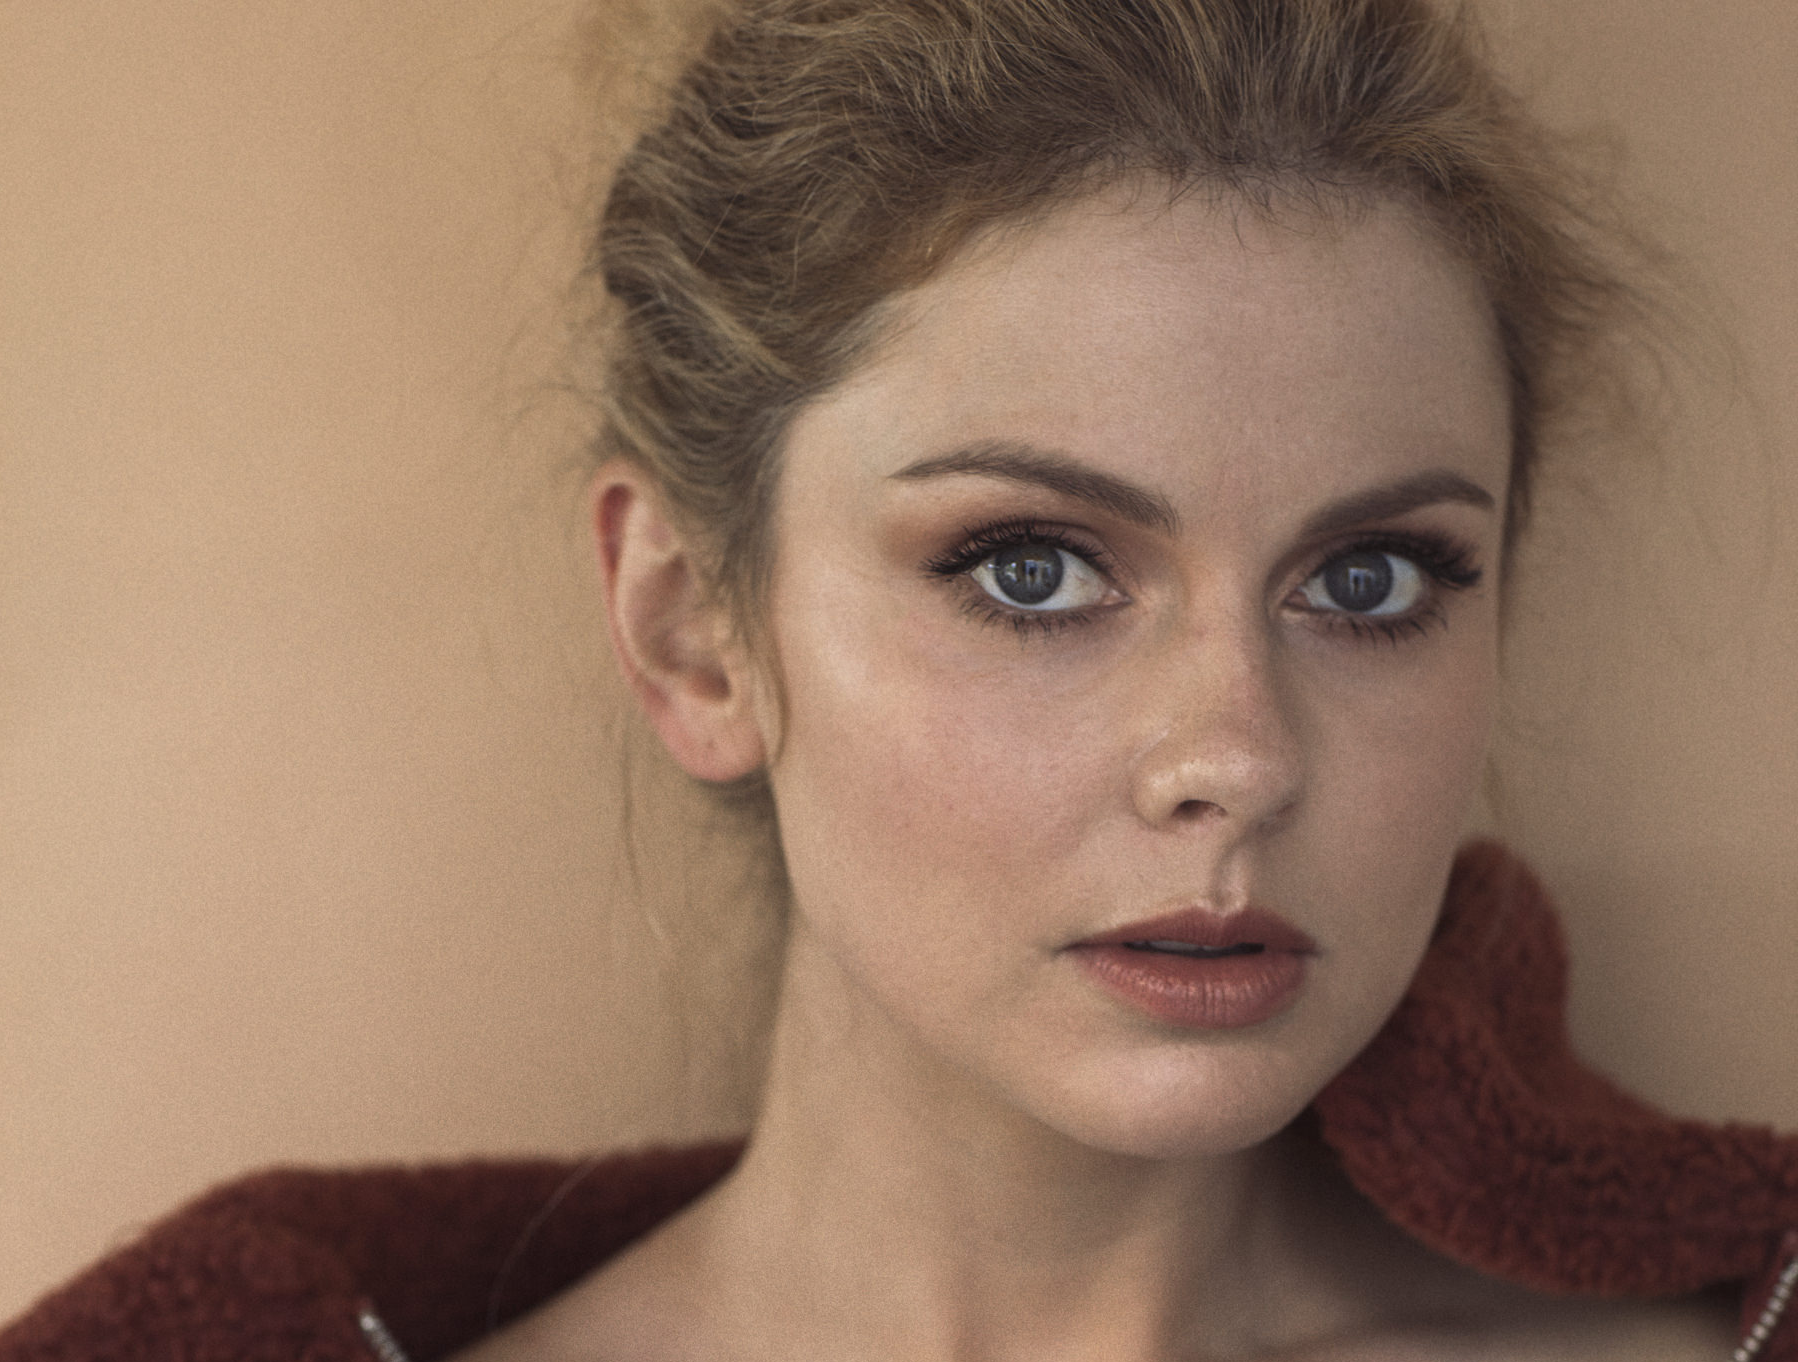 'iZombie' Star Rose McIver To Headline CBS Comedy Pilot 'Ghosts'